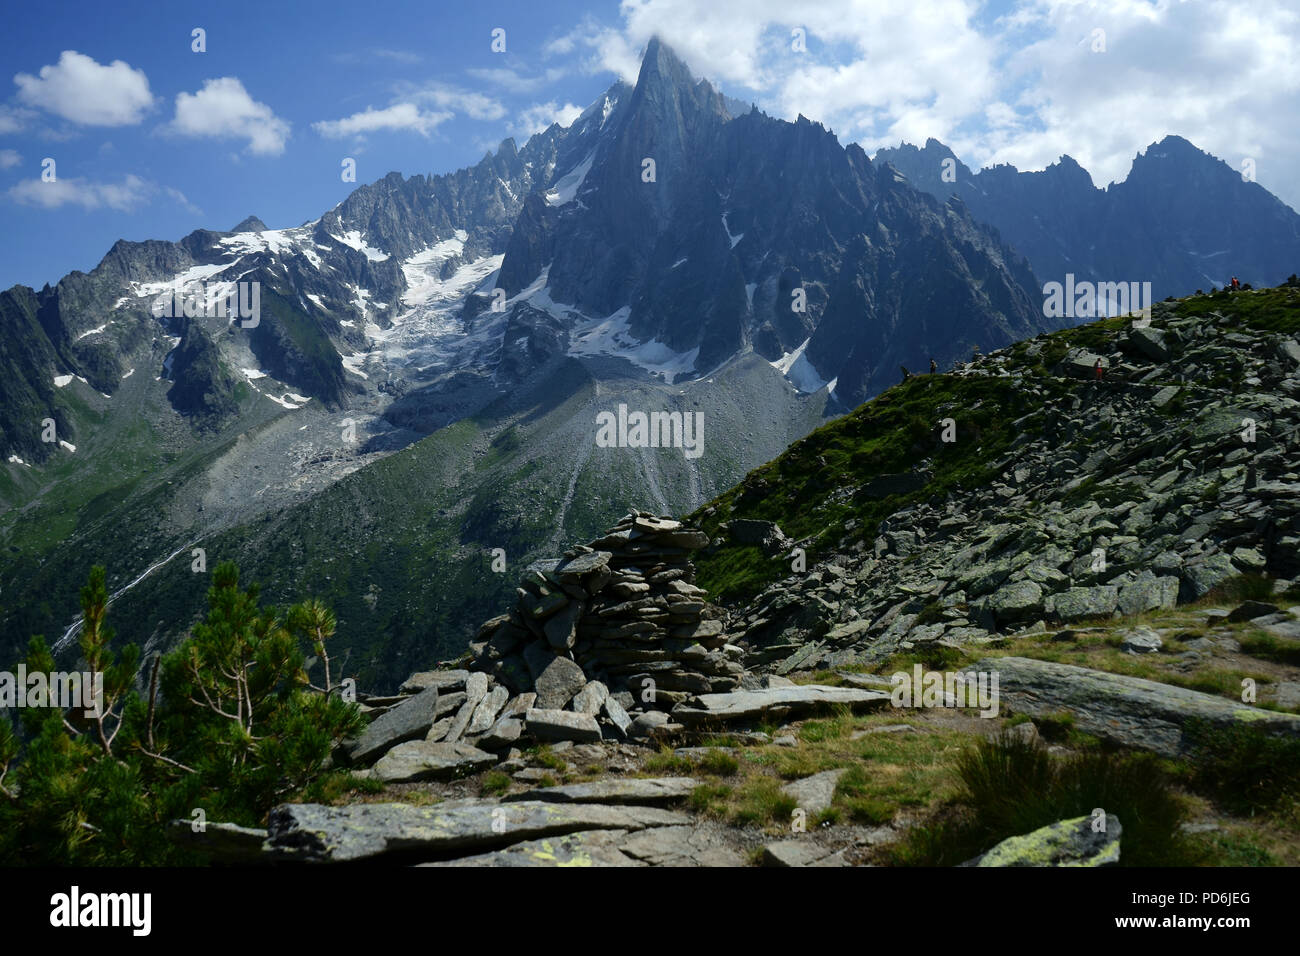 Hiker on trail from Aiguille du Midi to Montanevers in back Les Drus, Mont Blanc mountains,, Chamonis, French alps, France Stock Photo